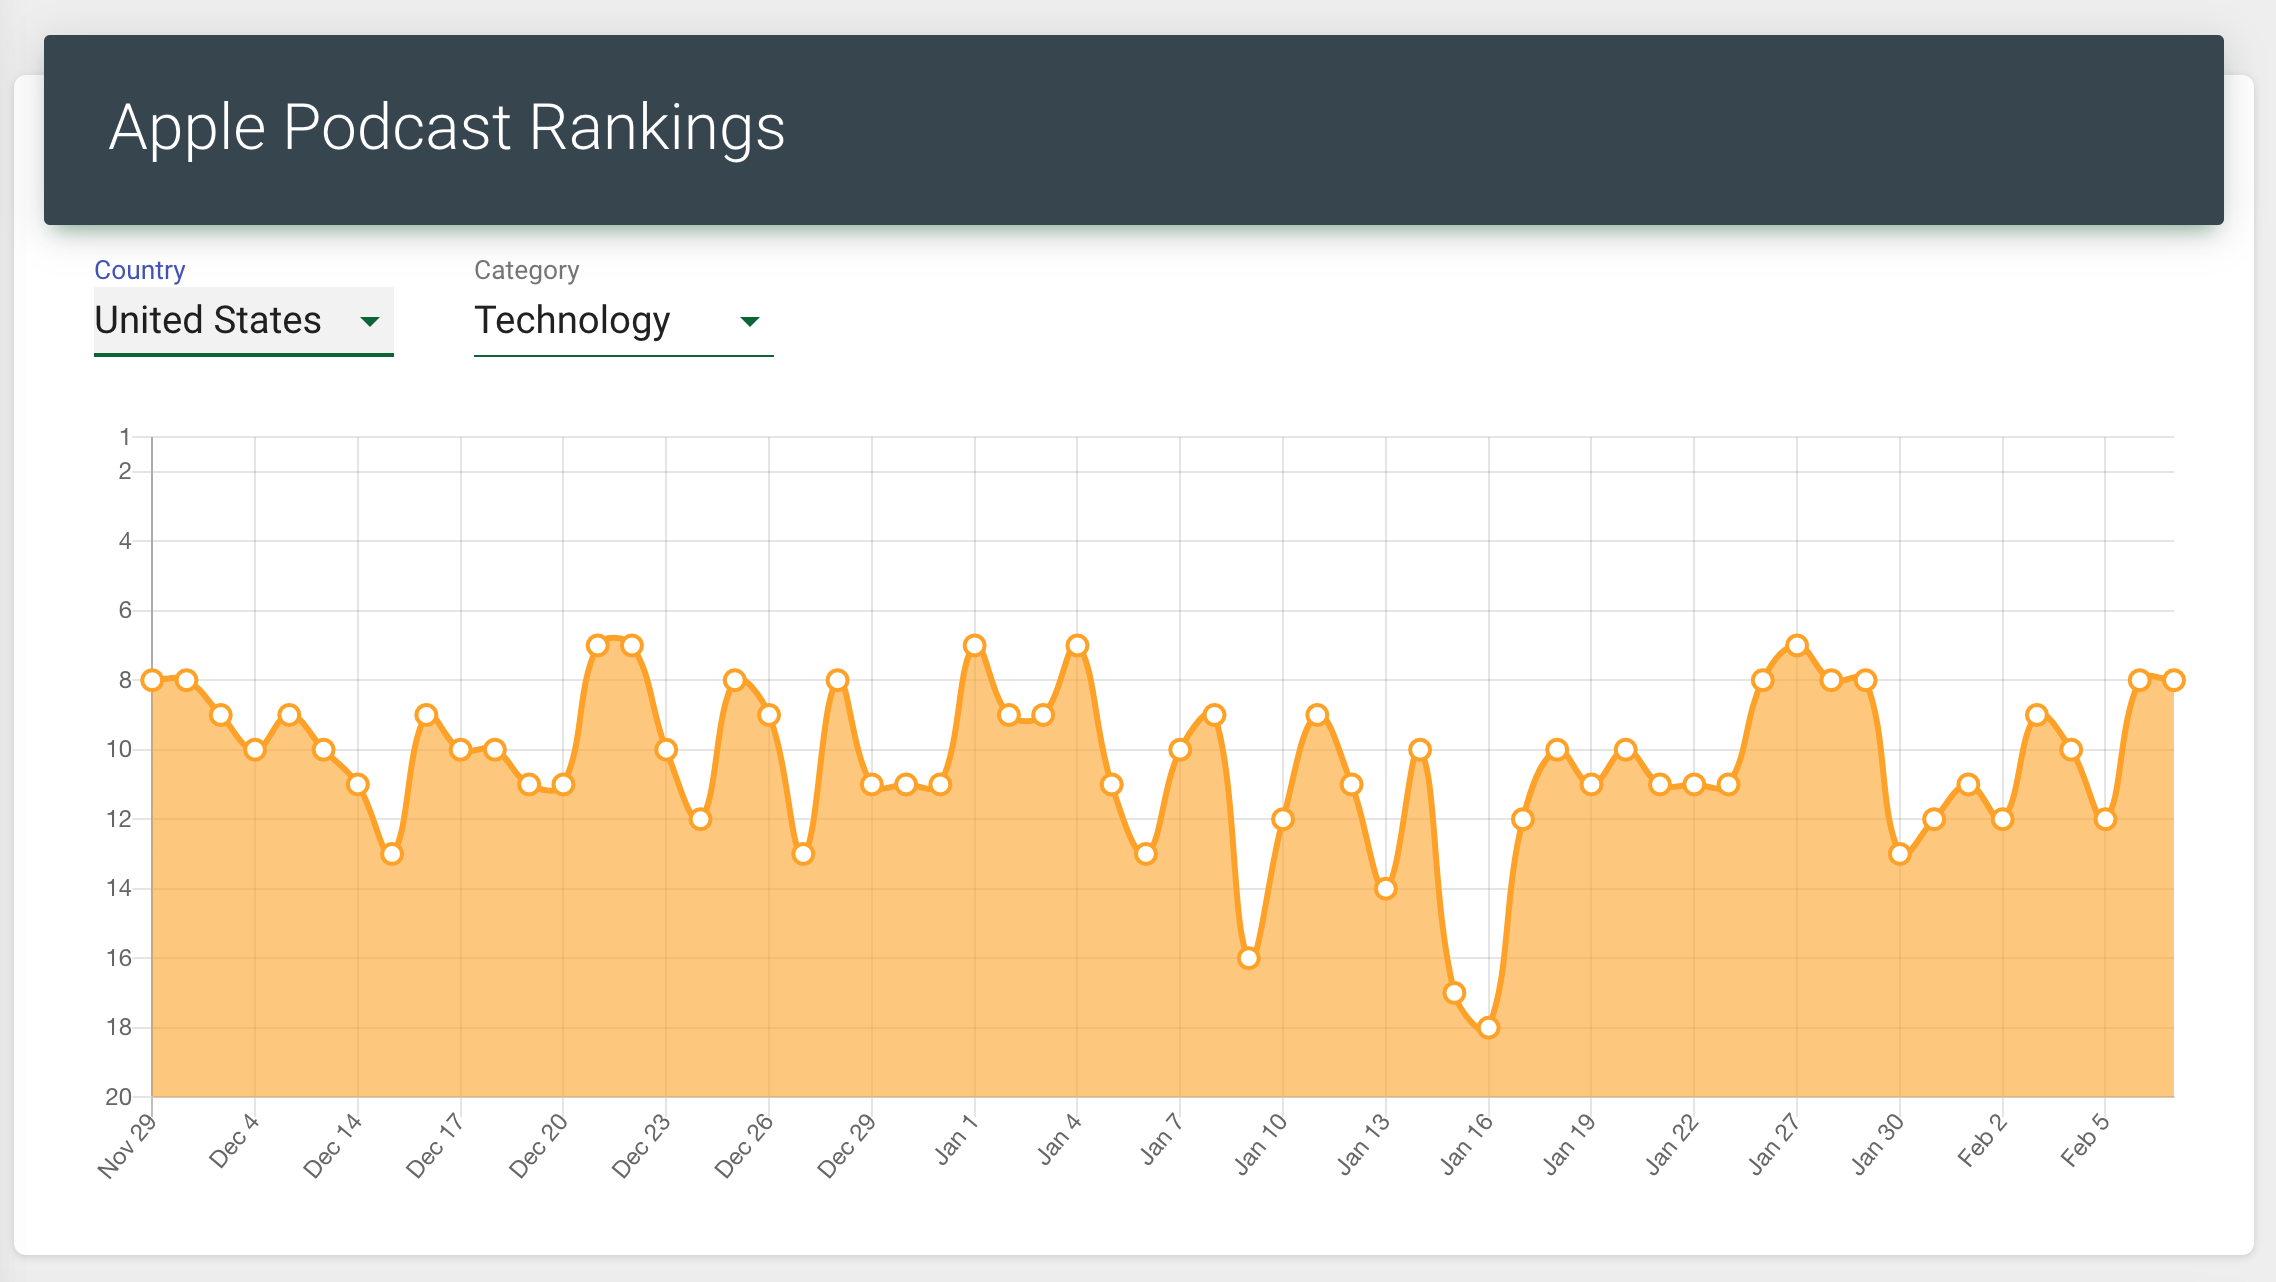 podcast-rankings-a16z-data-apple.png